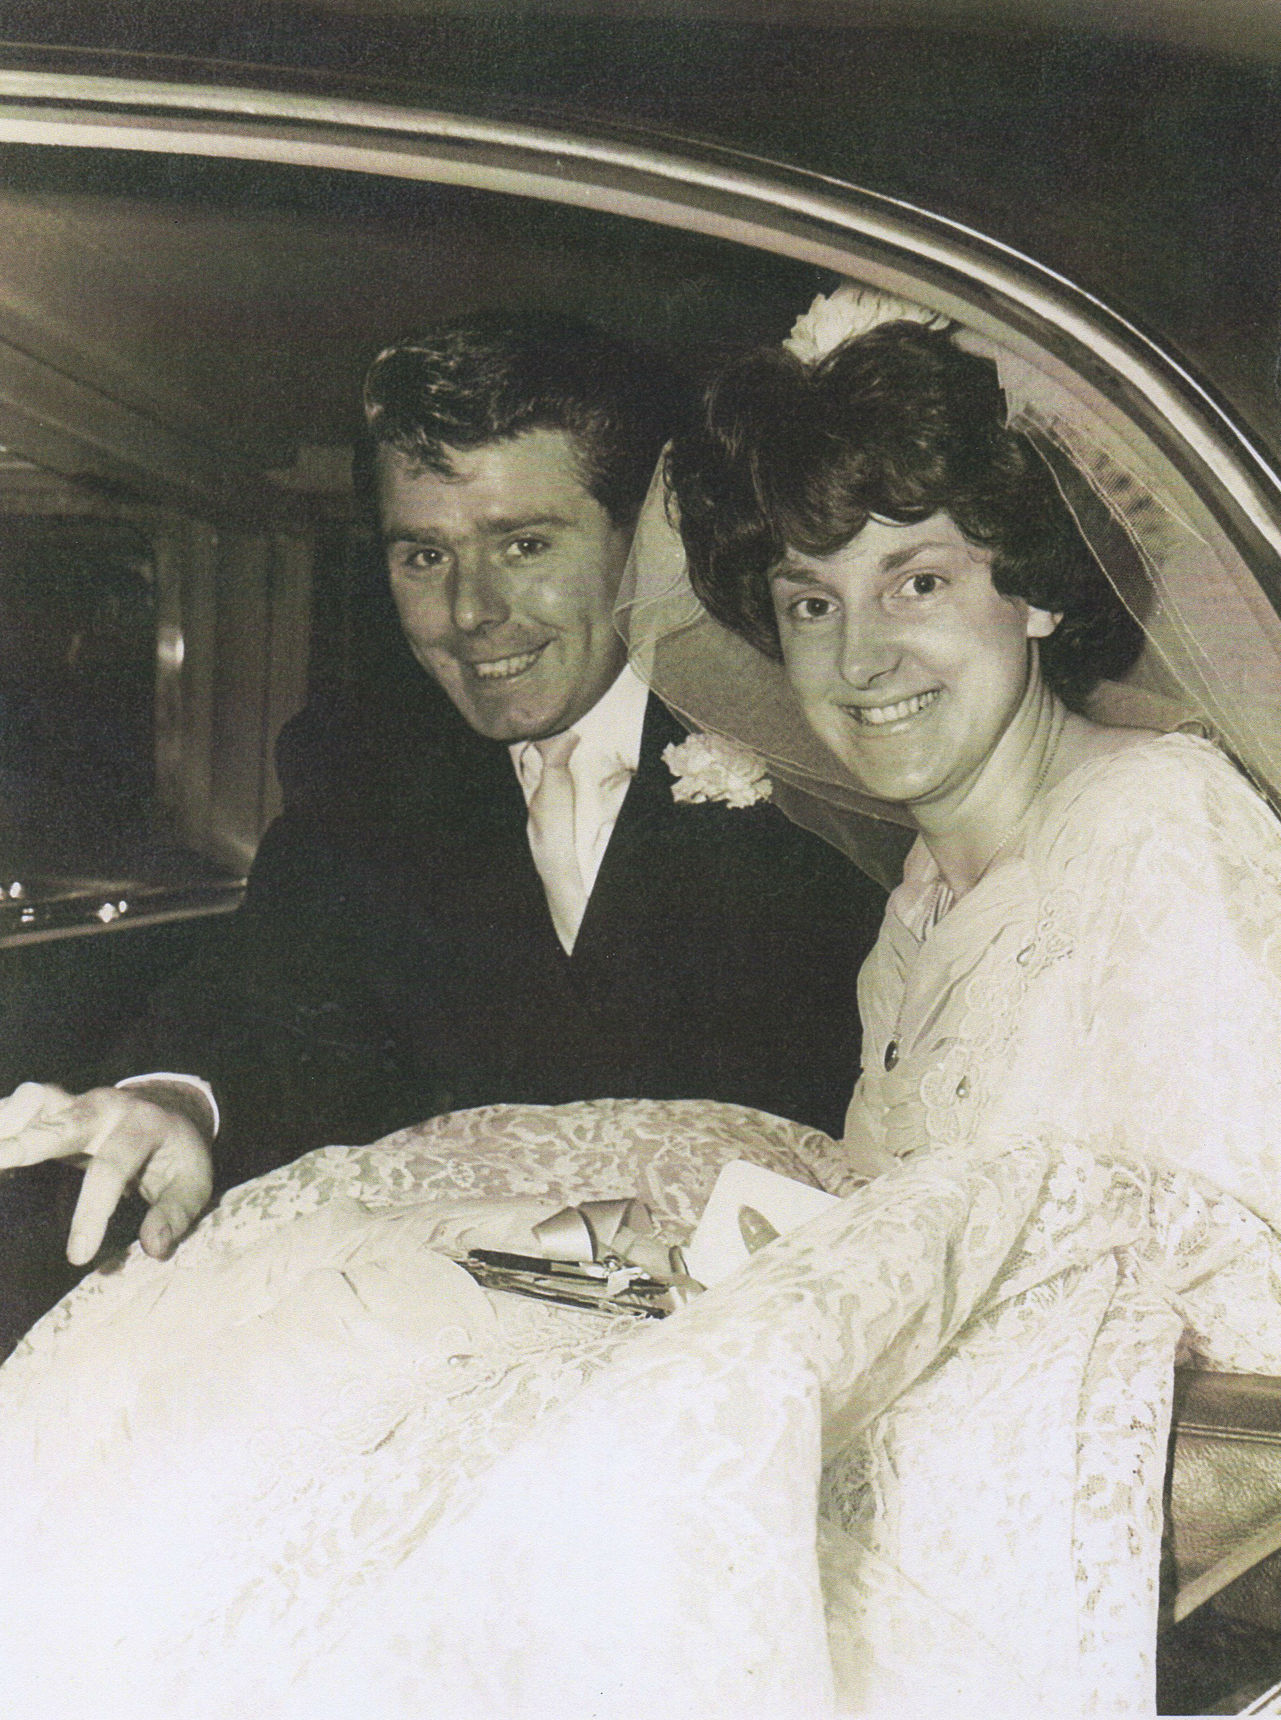 My Wedding Day 19th December 1964, pictured with my Husband Robert Haldane.